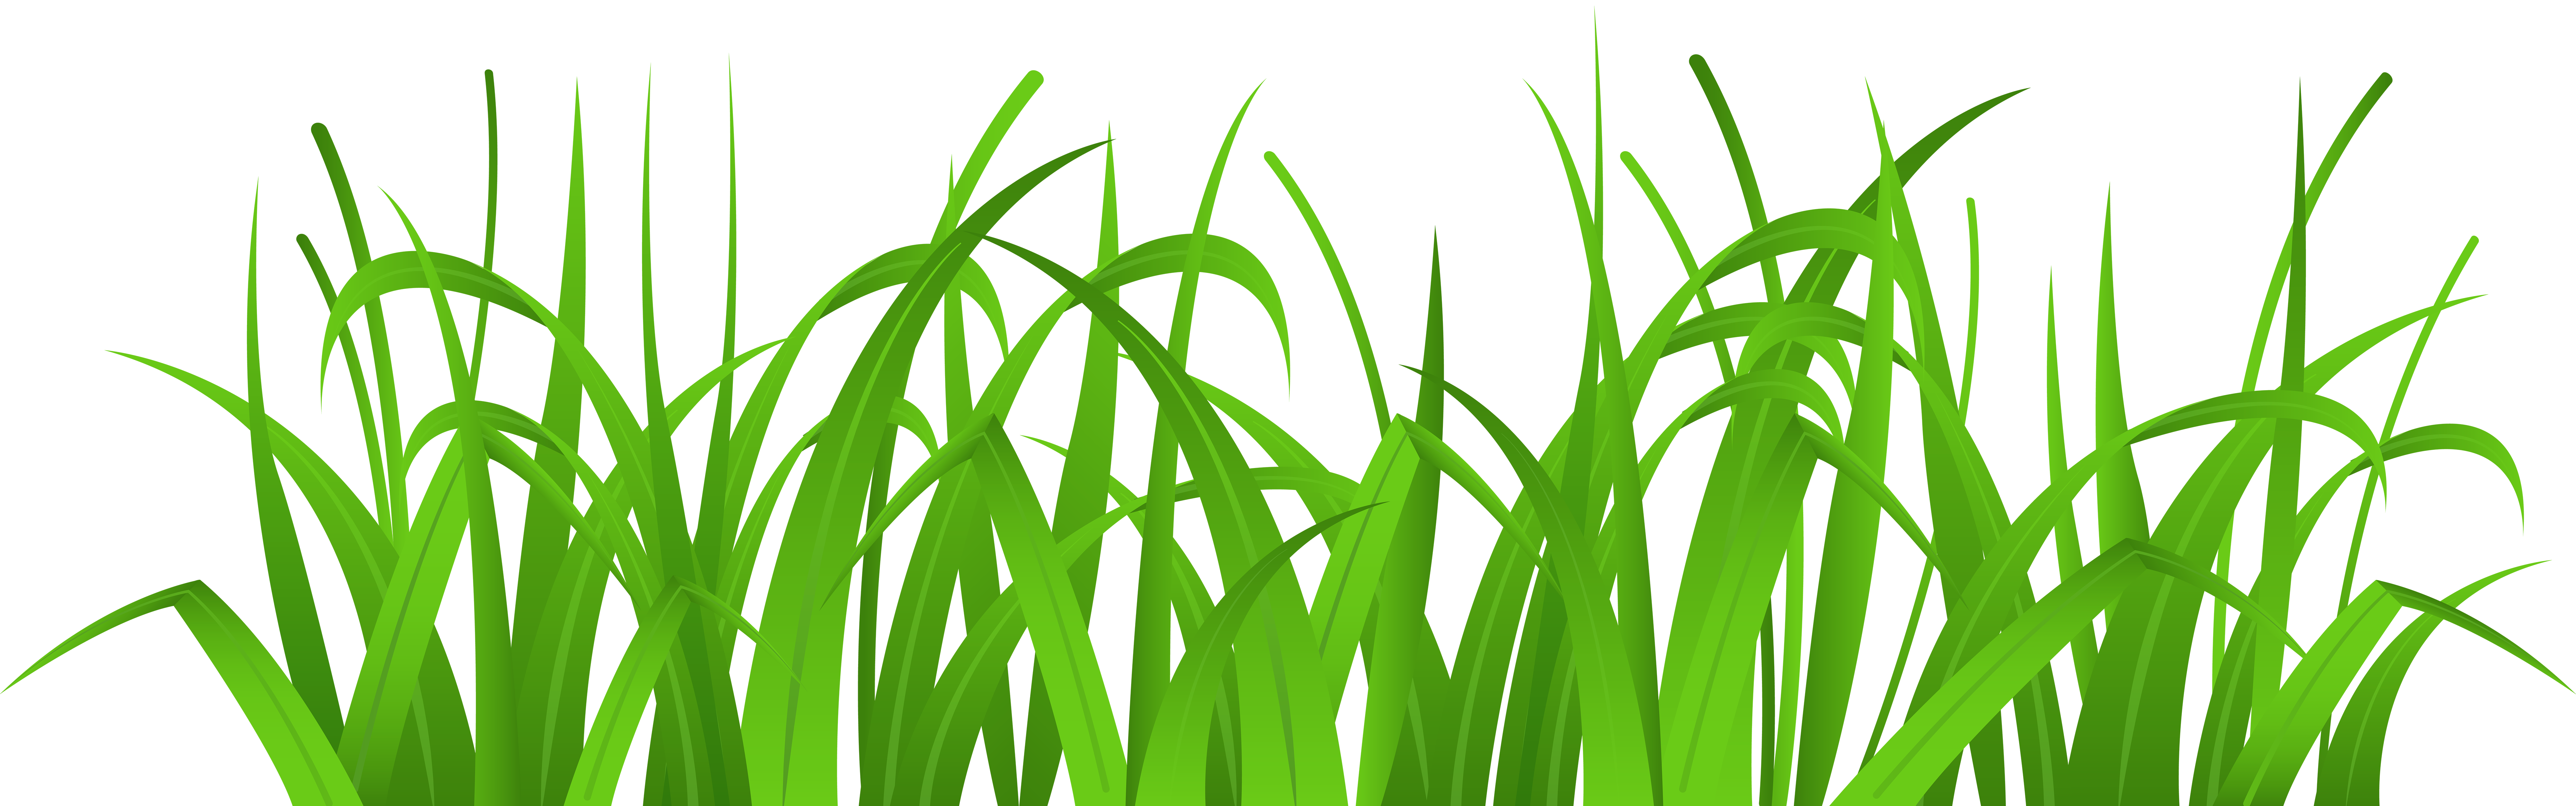 Bug clipart angry Grass Clipart clipart Clip &